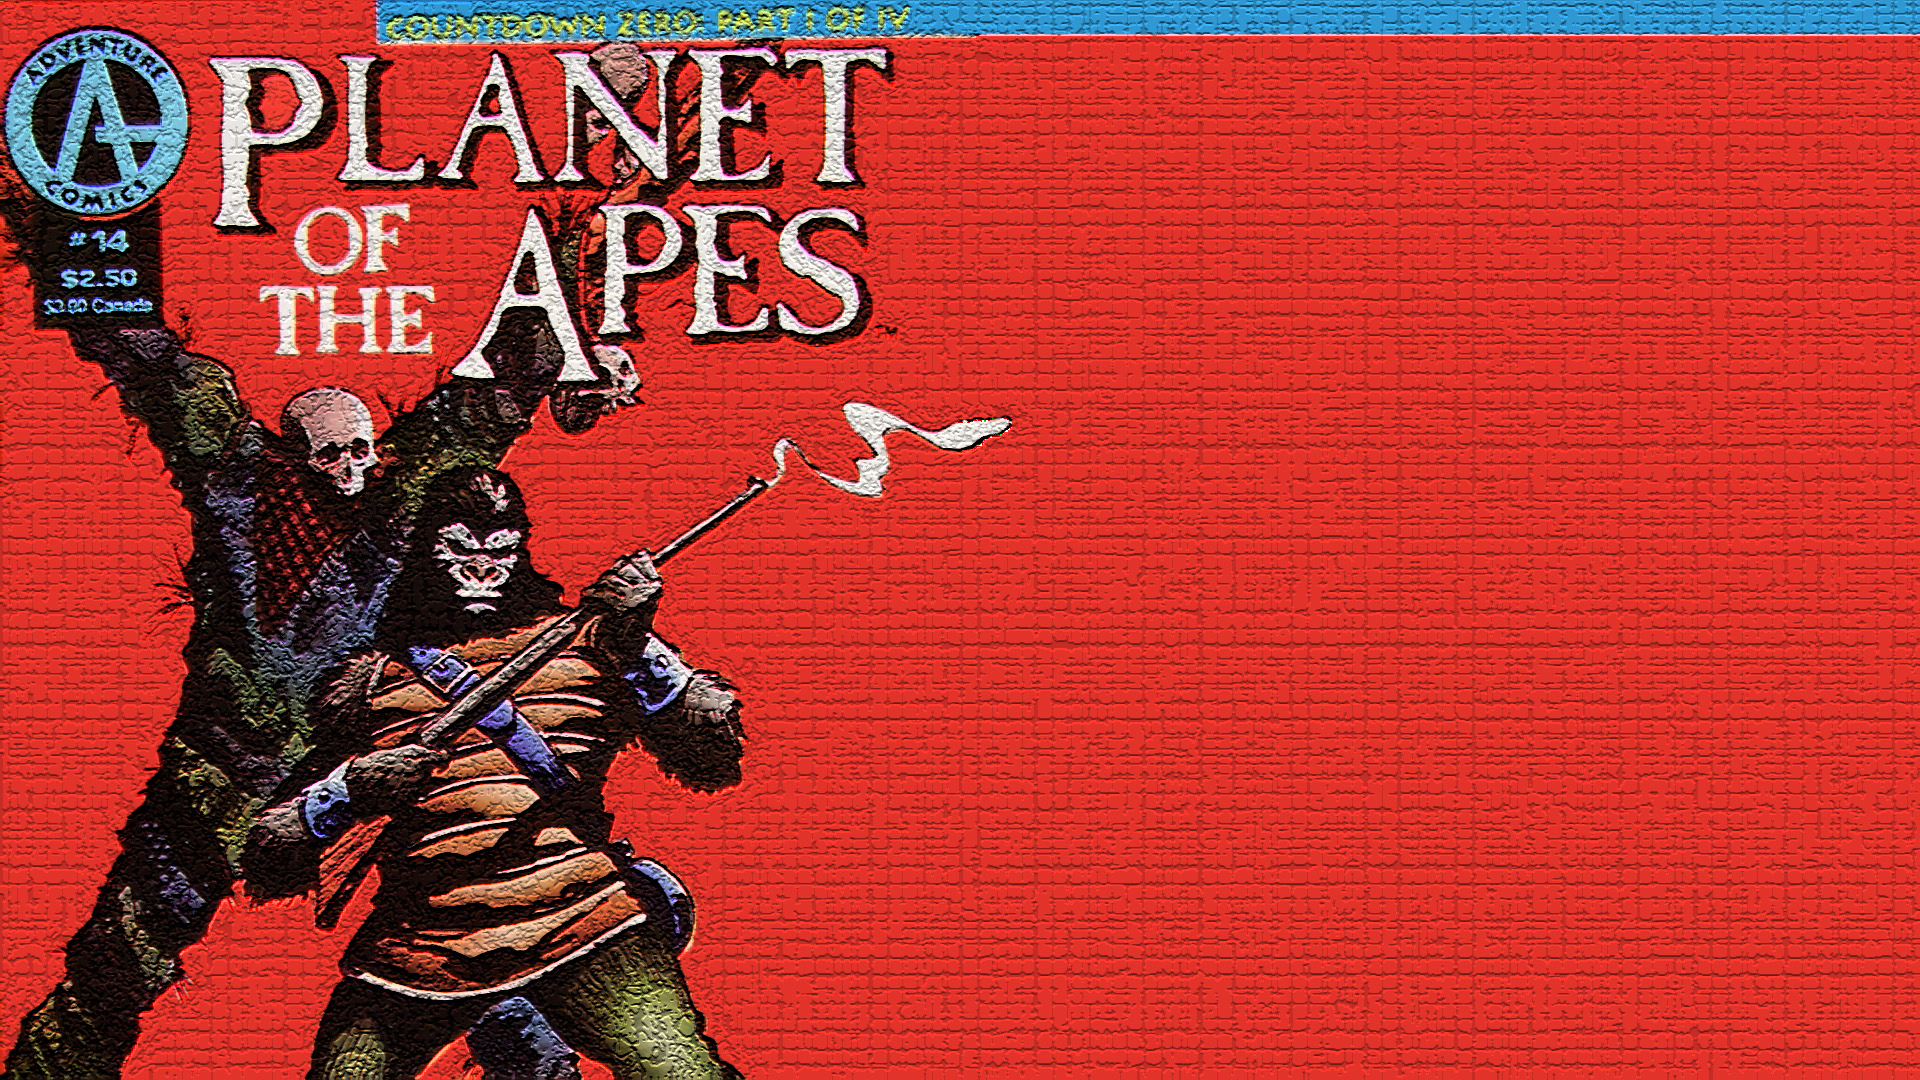 Planet Of The Apes Wallpaper: Planet Of The Apes Full HD Wallpaper And Background Image